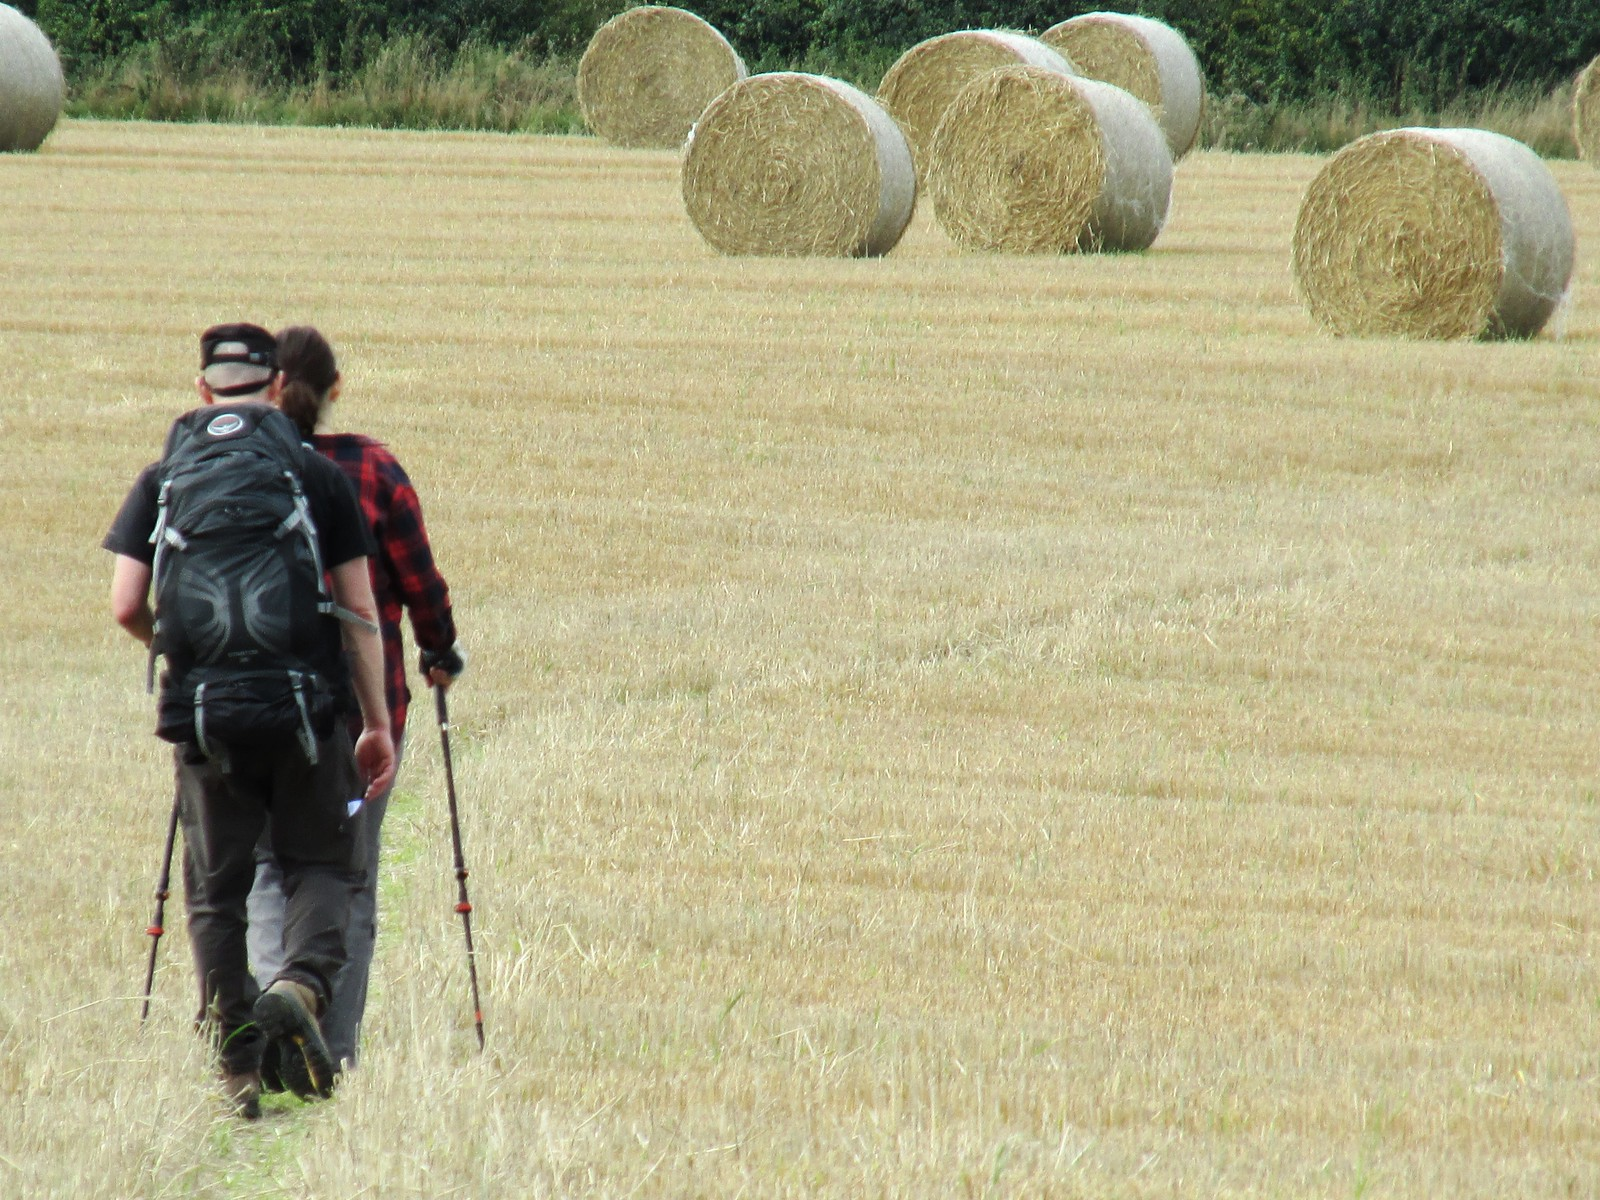 August 29, 2015: Lewes to Seaford Ramblers and hay bales